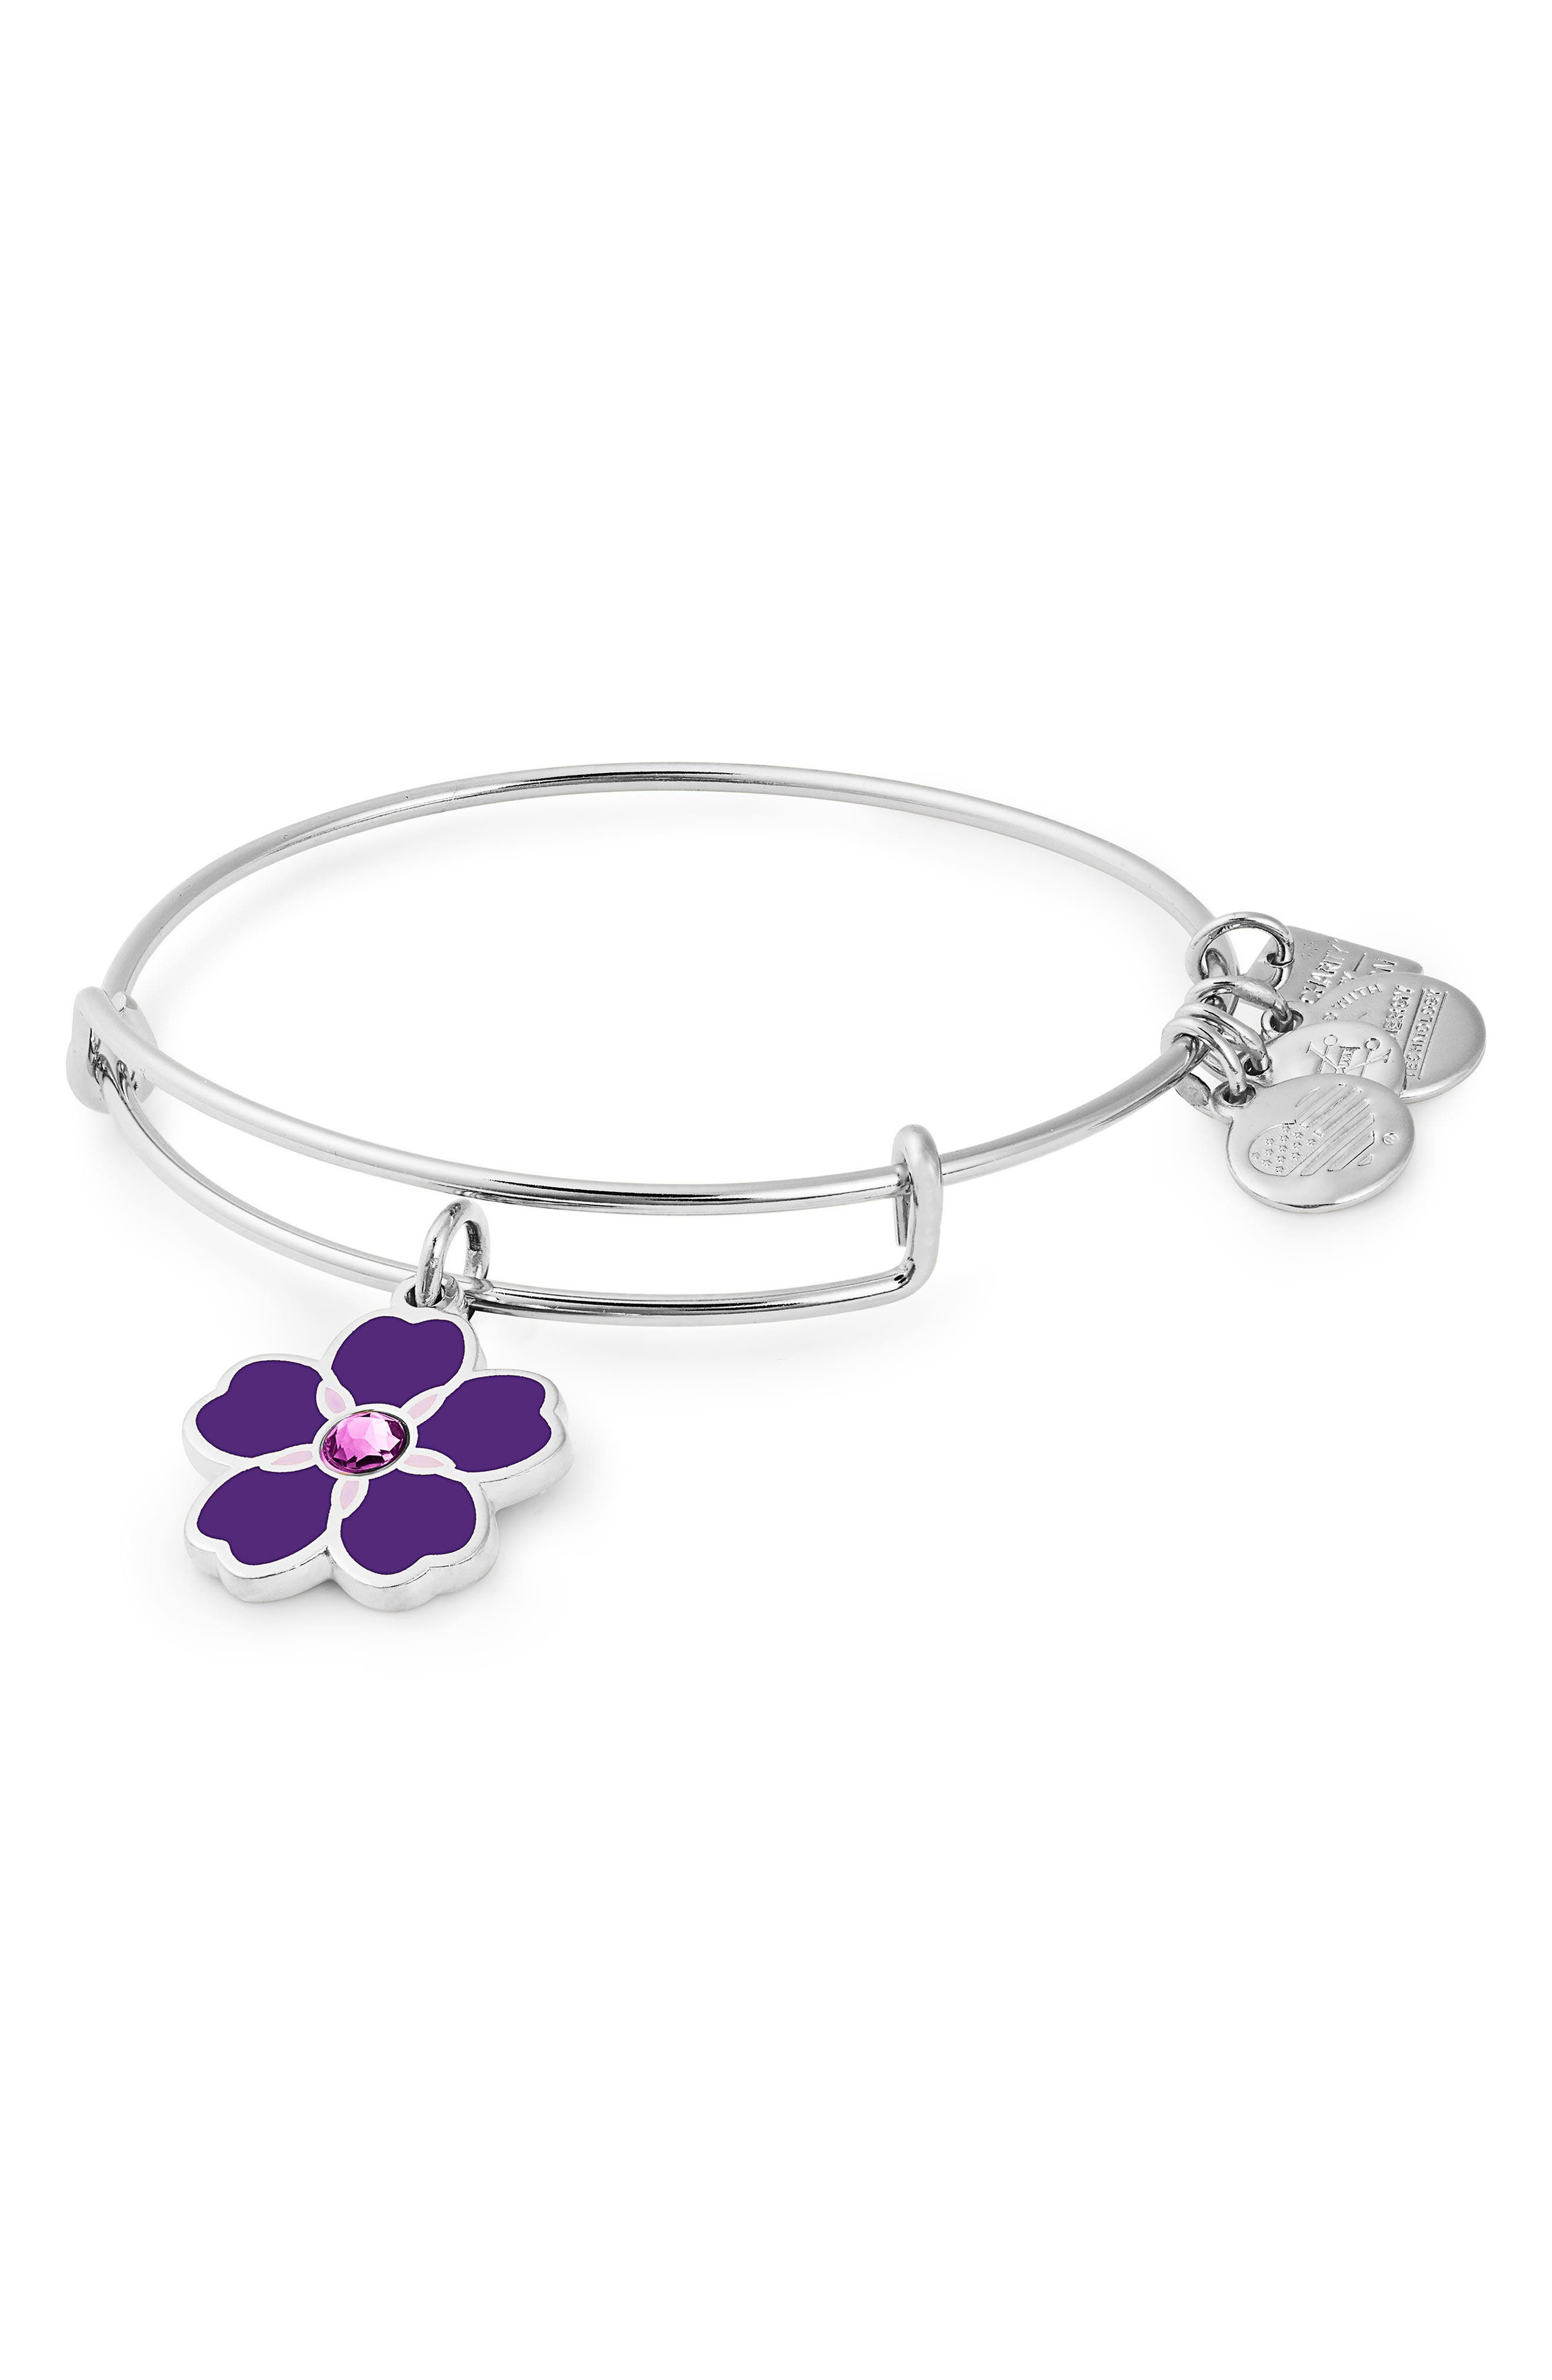 Charity by Design Forget Me Not Charm Bracelet,                             Main thumbnail 1, color,                             SILVER